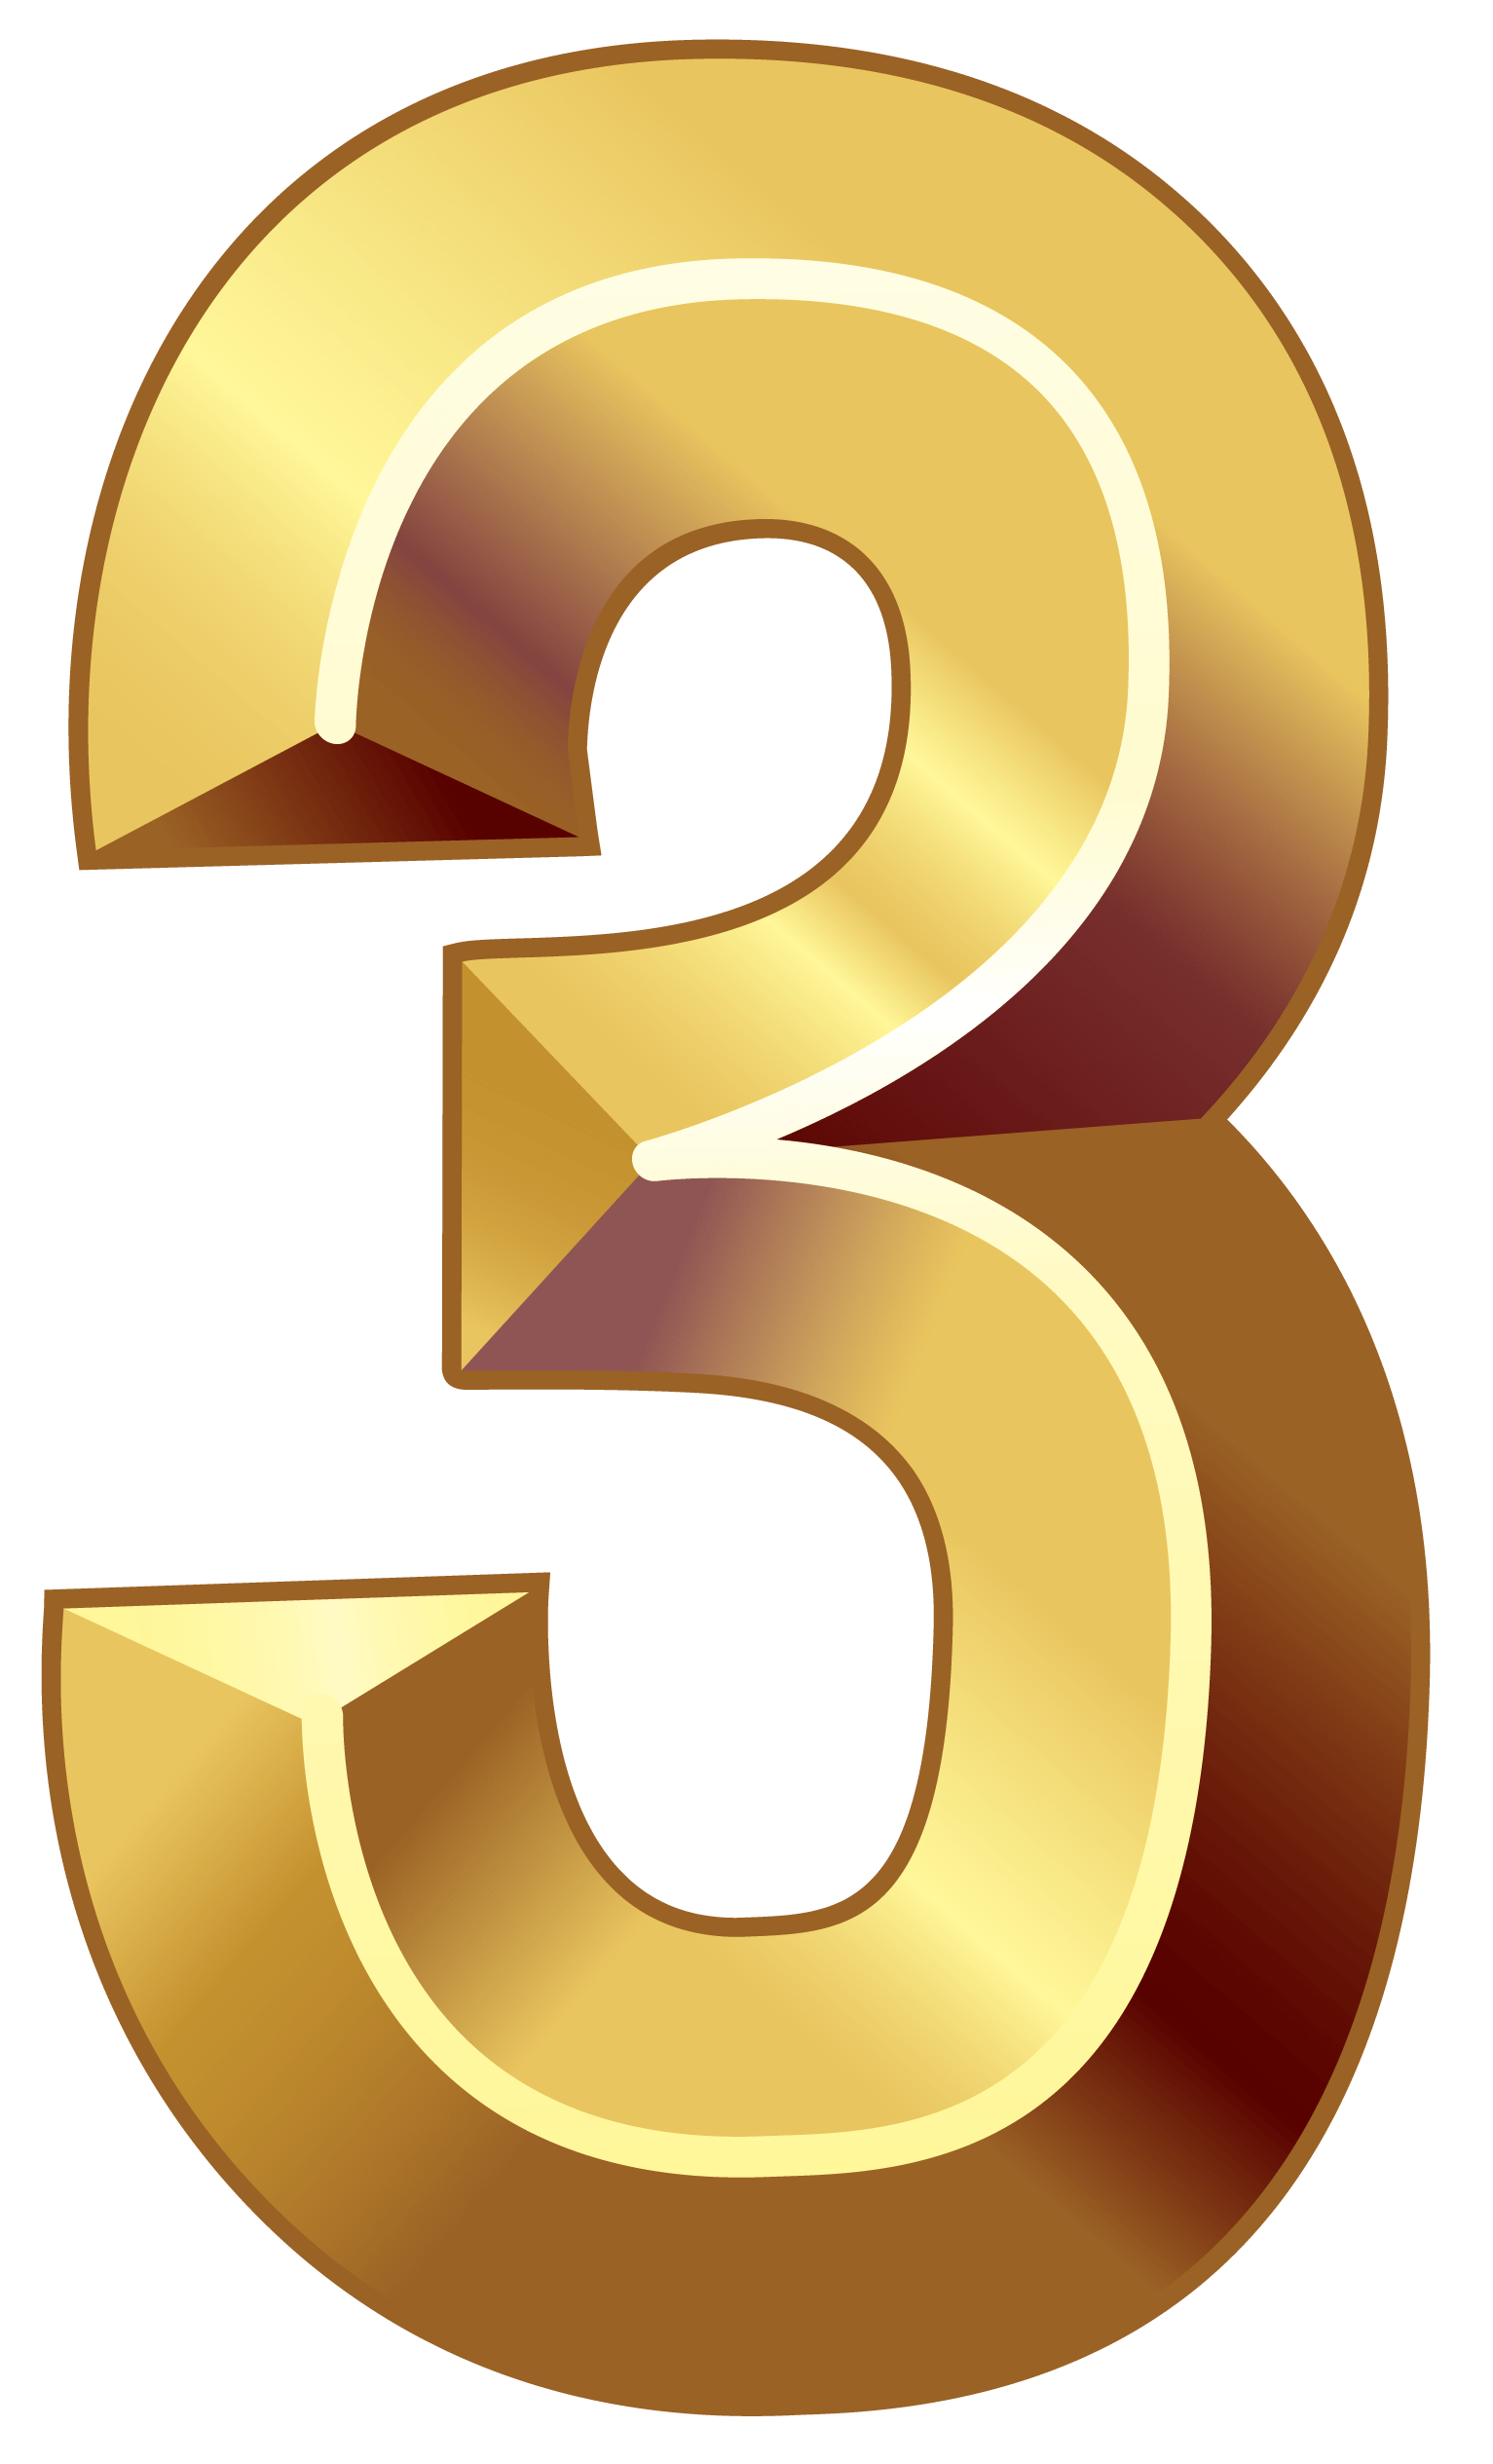 hight resolution of 1533x2530 gold number three png clipart image numbers64 gold